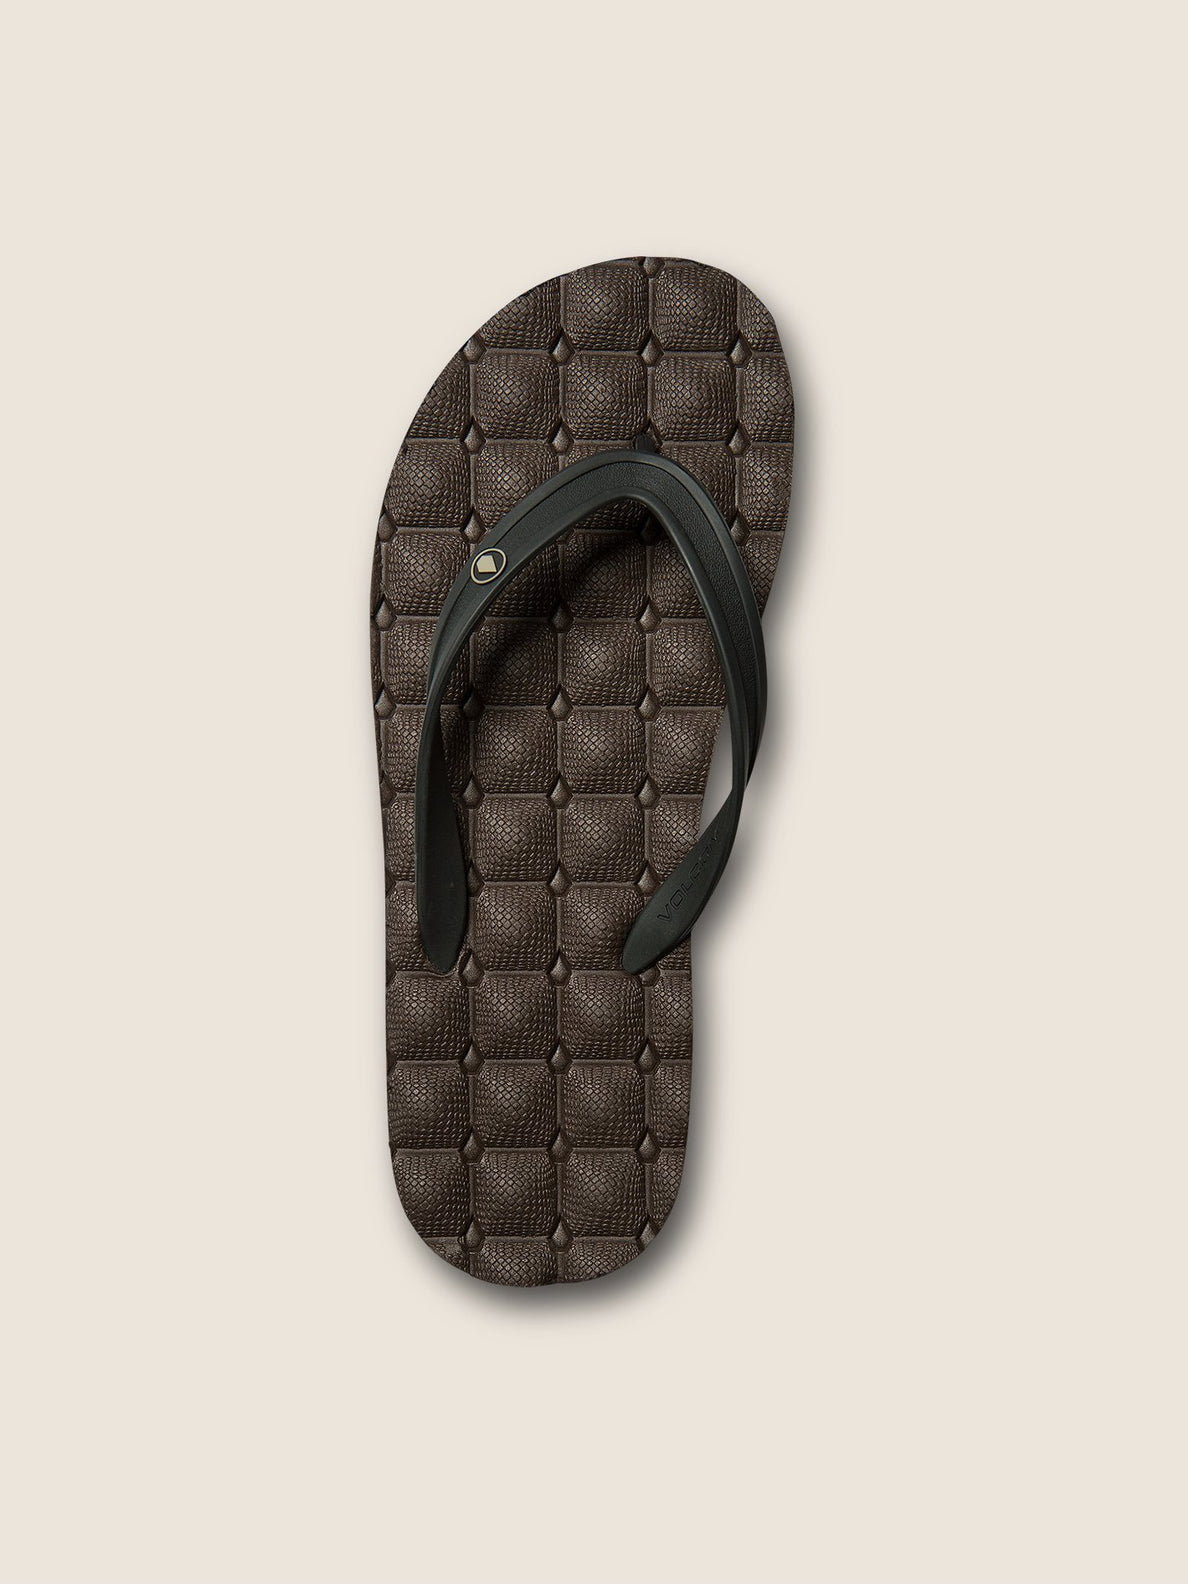 Recliner Rubber 2 Sandals In Brown Combo, Alternate View